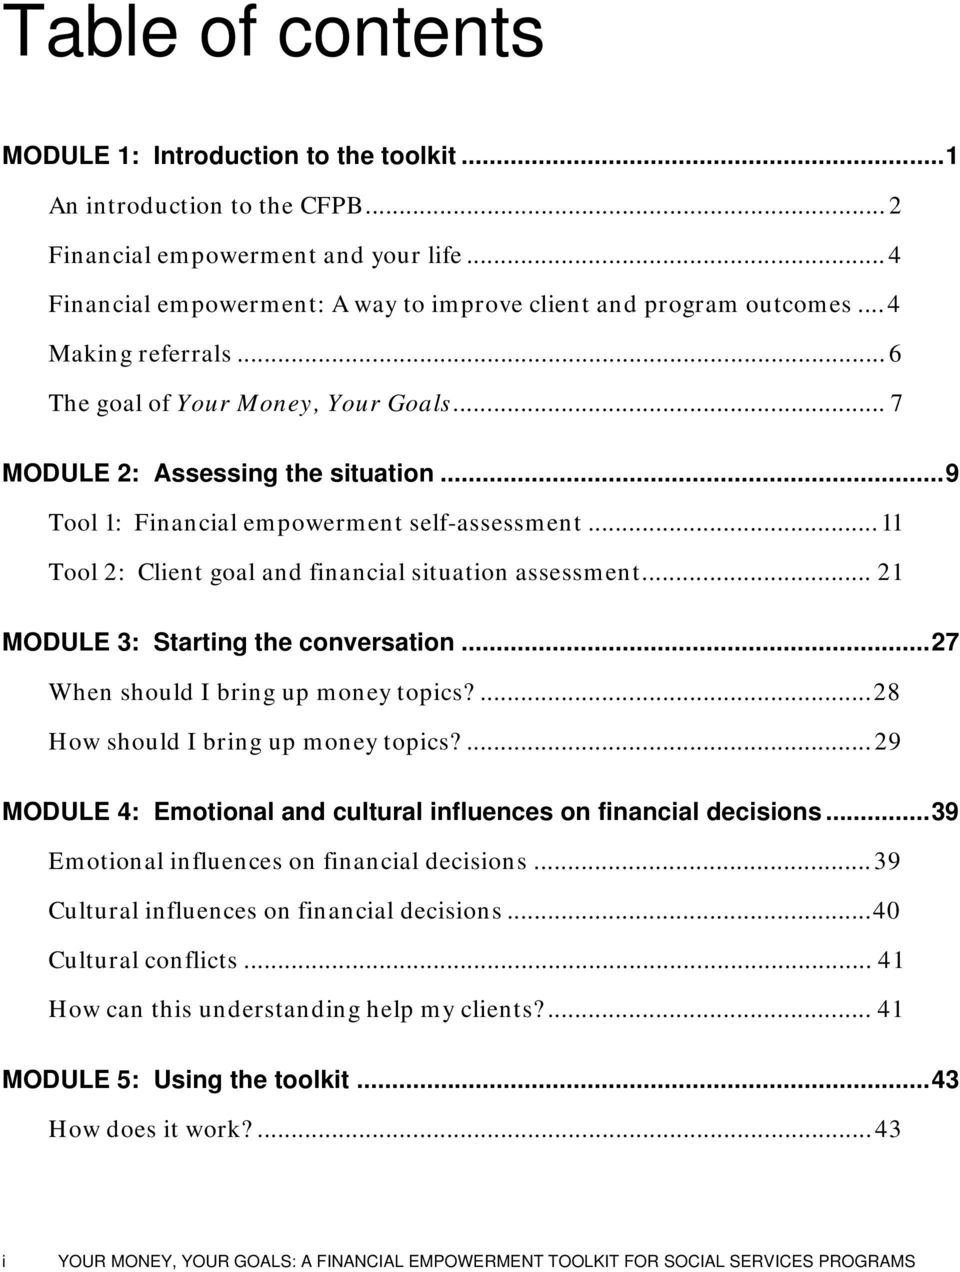 ..11 Tool 2: Client goal and financial situation assessment... 21 MODULE 3: Starting the conversation...27 When should I bring up money topics?...28 How should I bring up money topics?